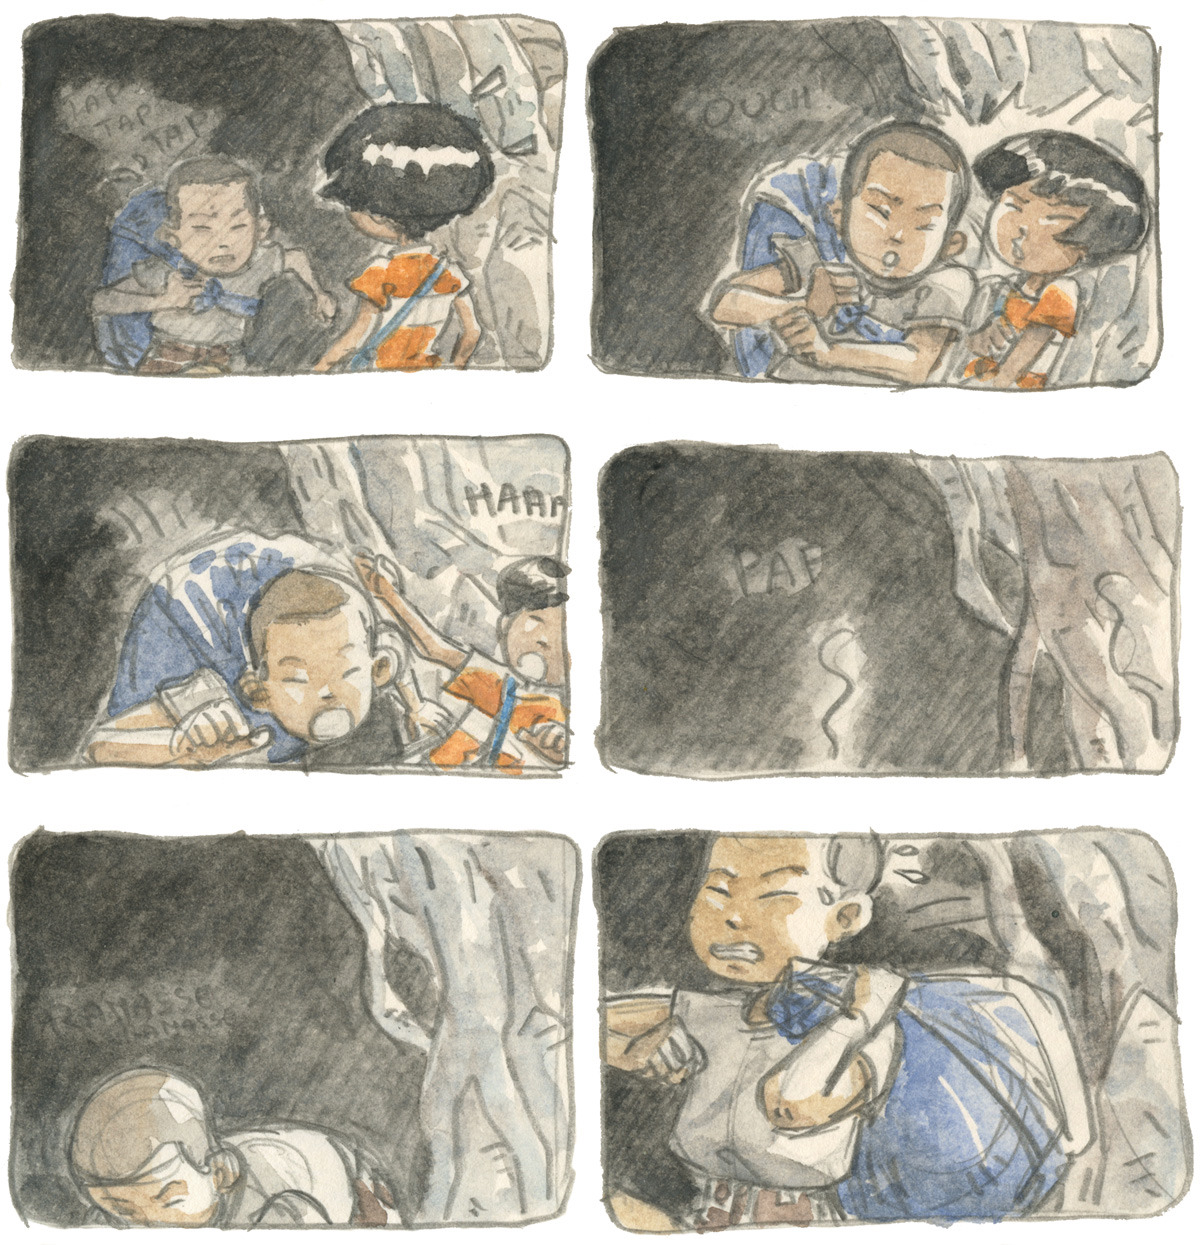 Storyboard from The Coral Cave.It's one of the first sequences of the story. Mizuka meets a wandering kid who will lead her to a mysterious world.